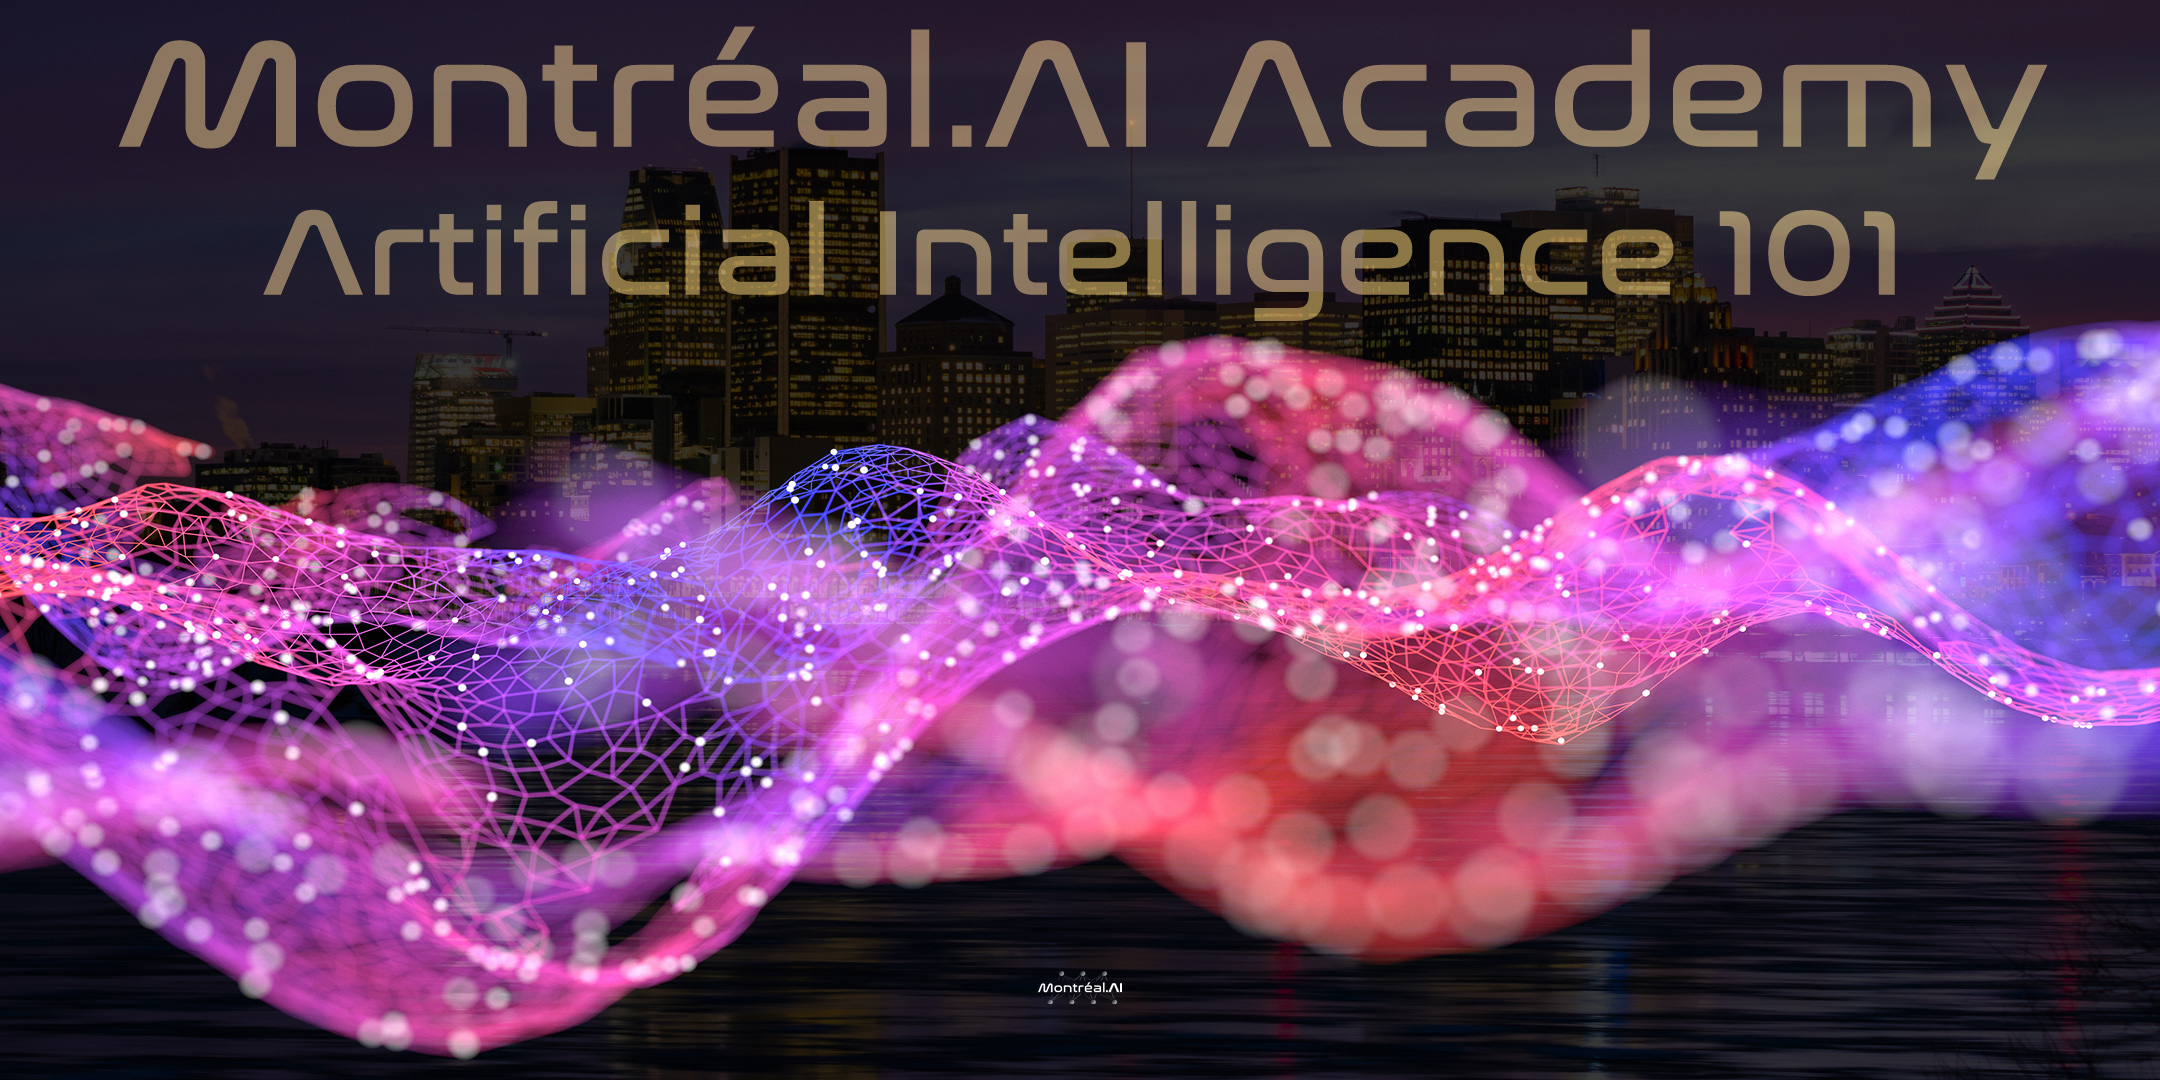 Artificial Intelligence 101: The First World-Class Overview of AI for the General Public